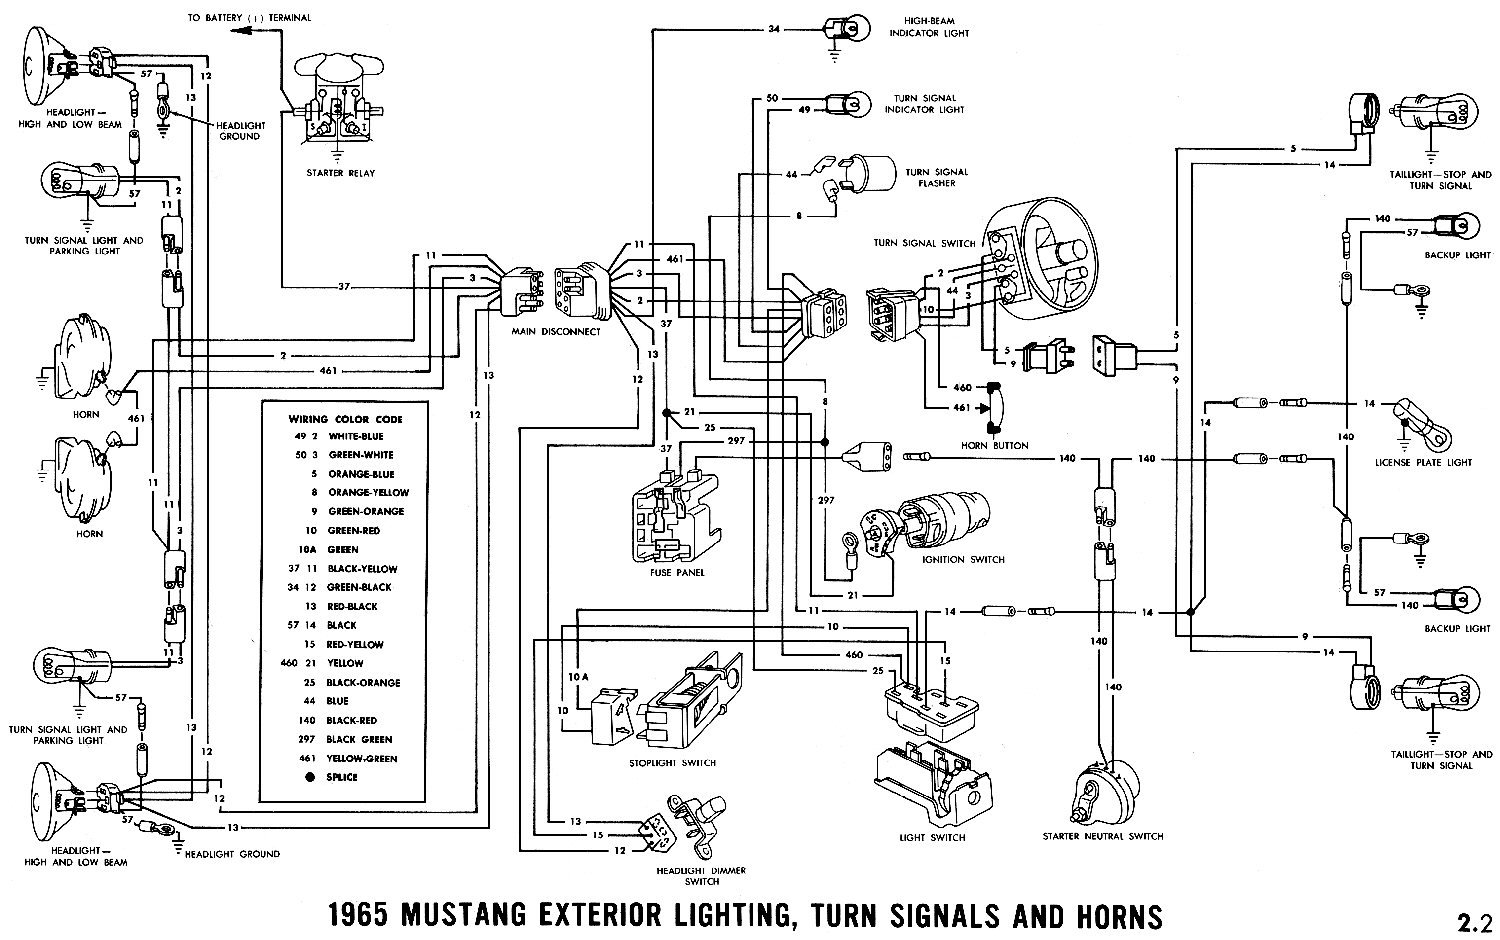 64705d1237858195-fuse-block-1965-mustang-coupe-1965e Car Wireing Diagrams on trailer wiring diagram, 1991 subaru legacy master brake system schematic diagram, light switch wiring diagram, basic chevy alternator wiring diagram, delco alternator wiring diagram, 1964 ford truck wiper switch wiring diagram, auto electrical wiring diagram, box car light wiring diagram, 30 model a wire diagram, ignition wiring diagram, chevrolet wiring diagram, 1958 ford ranchero headlight switch wiring diagram,